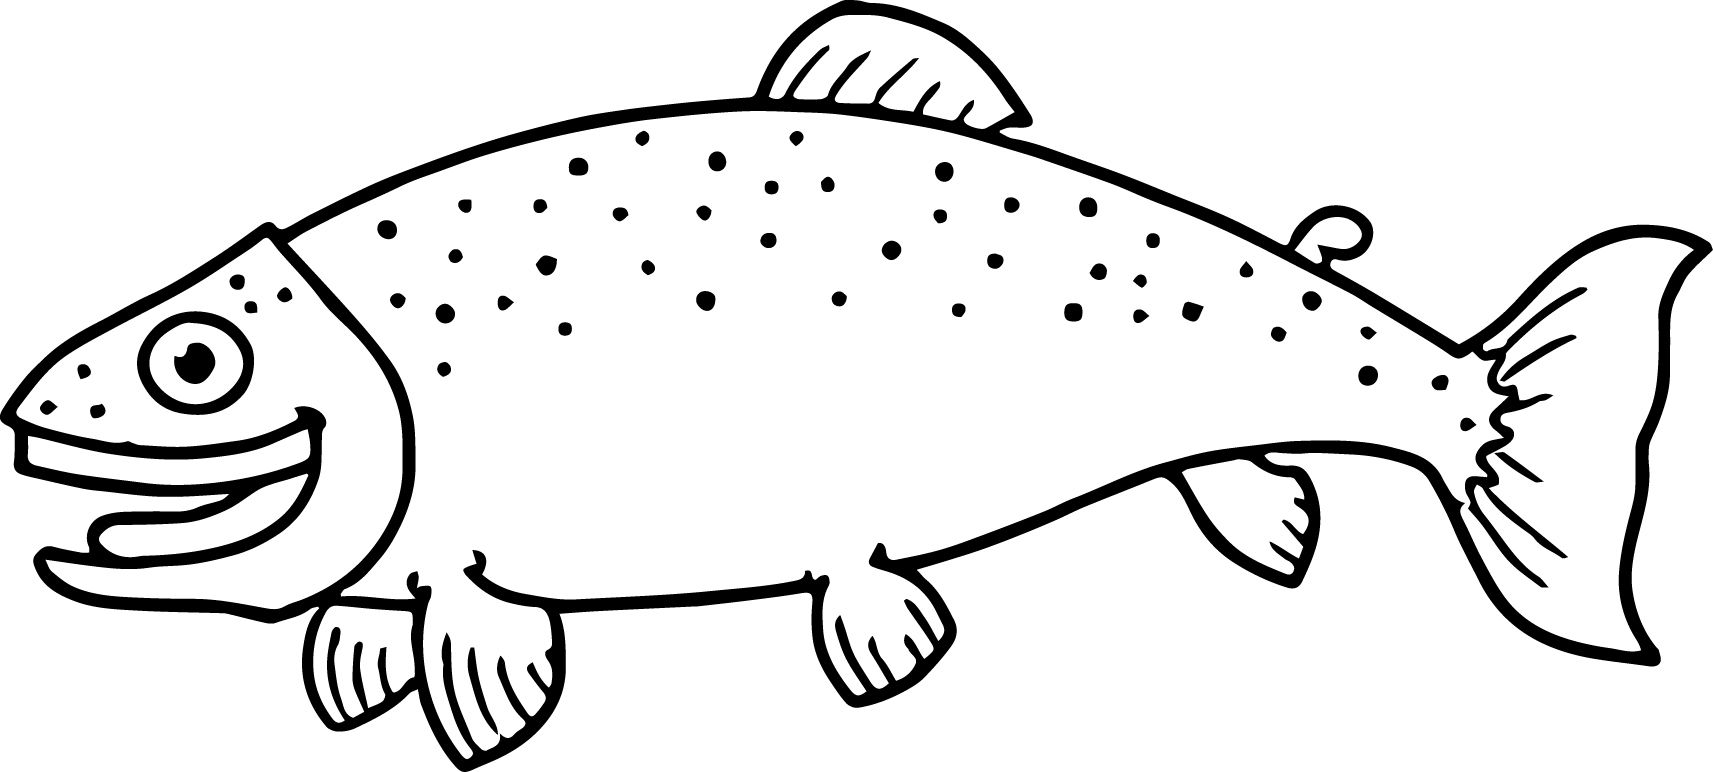 nice Little Happy Cartoon Fish Coloring Page Sheet Fish